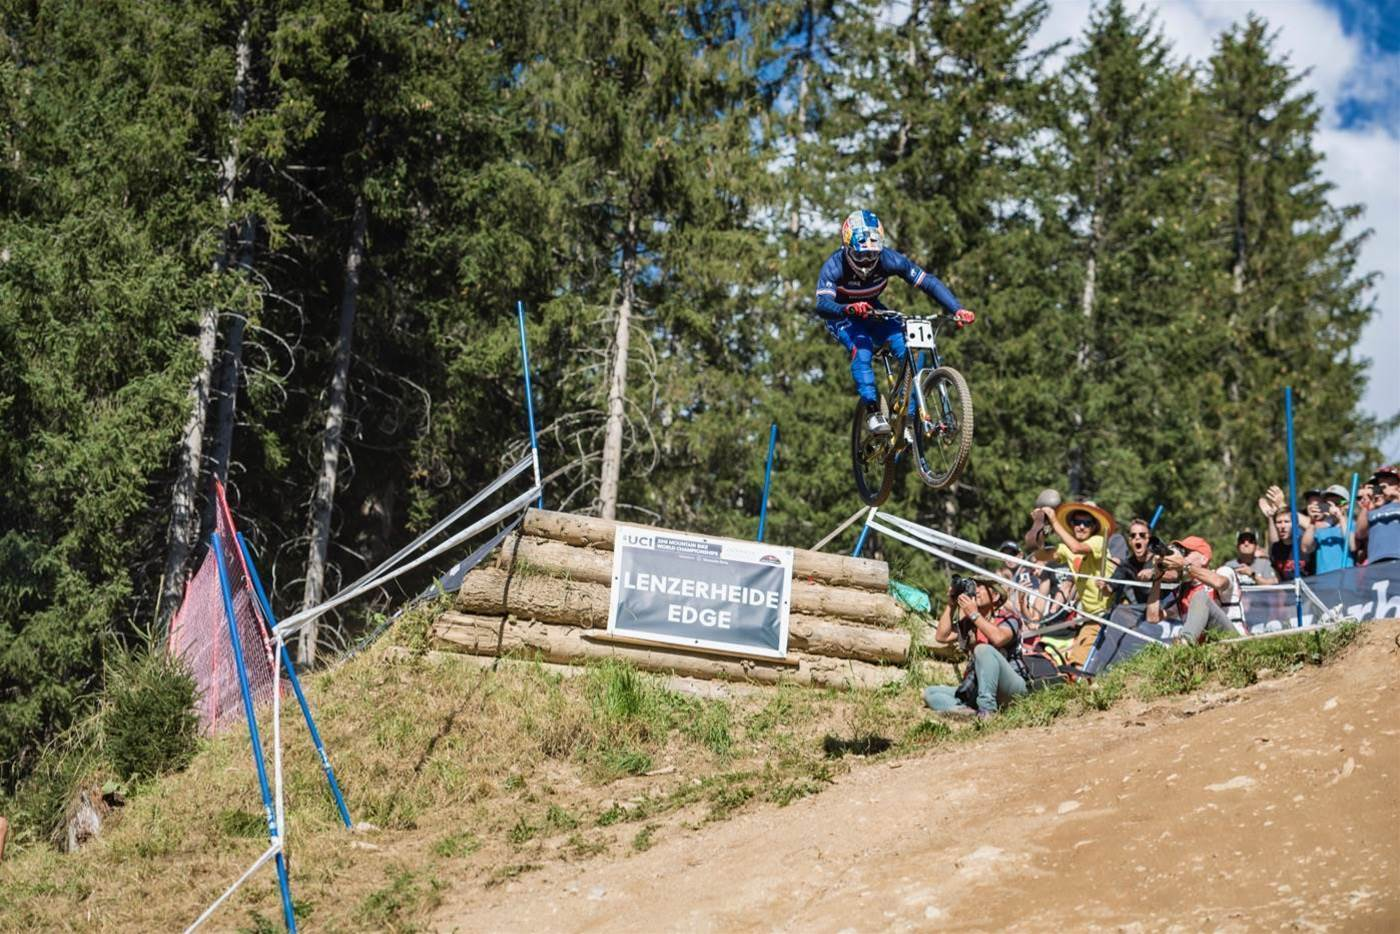 Downhill champions crowned in Lenzerheide